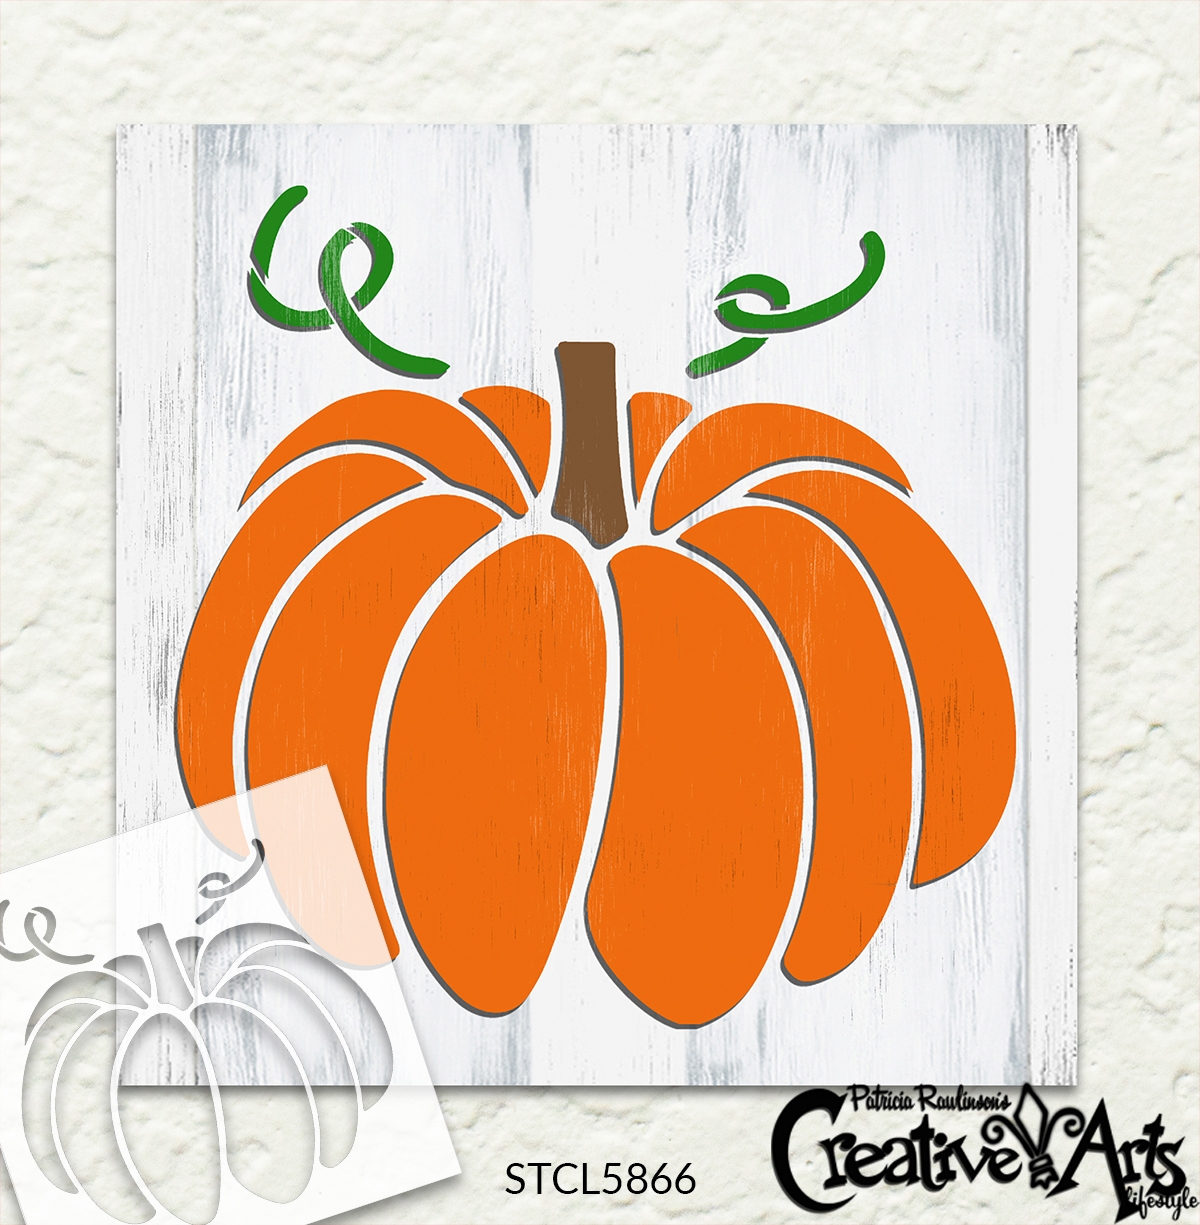 Pumpkin with Curling Vines Stencil by StudioR12 | Craft DIY Fall Home Decor | Paint Autumn Farmhouse Wood Sign Reusable Mylar Template | Select Size